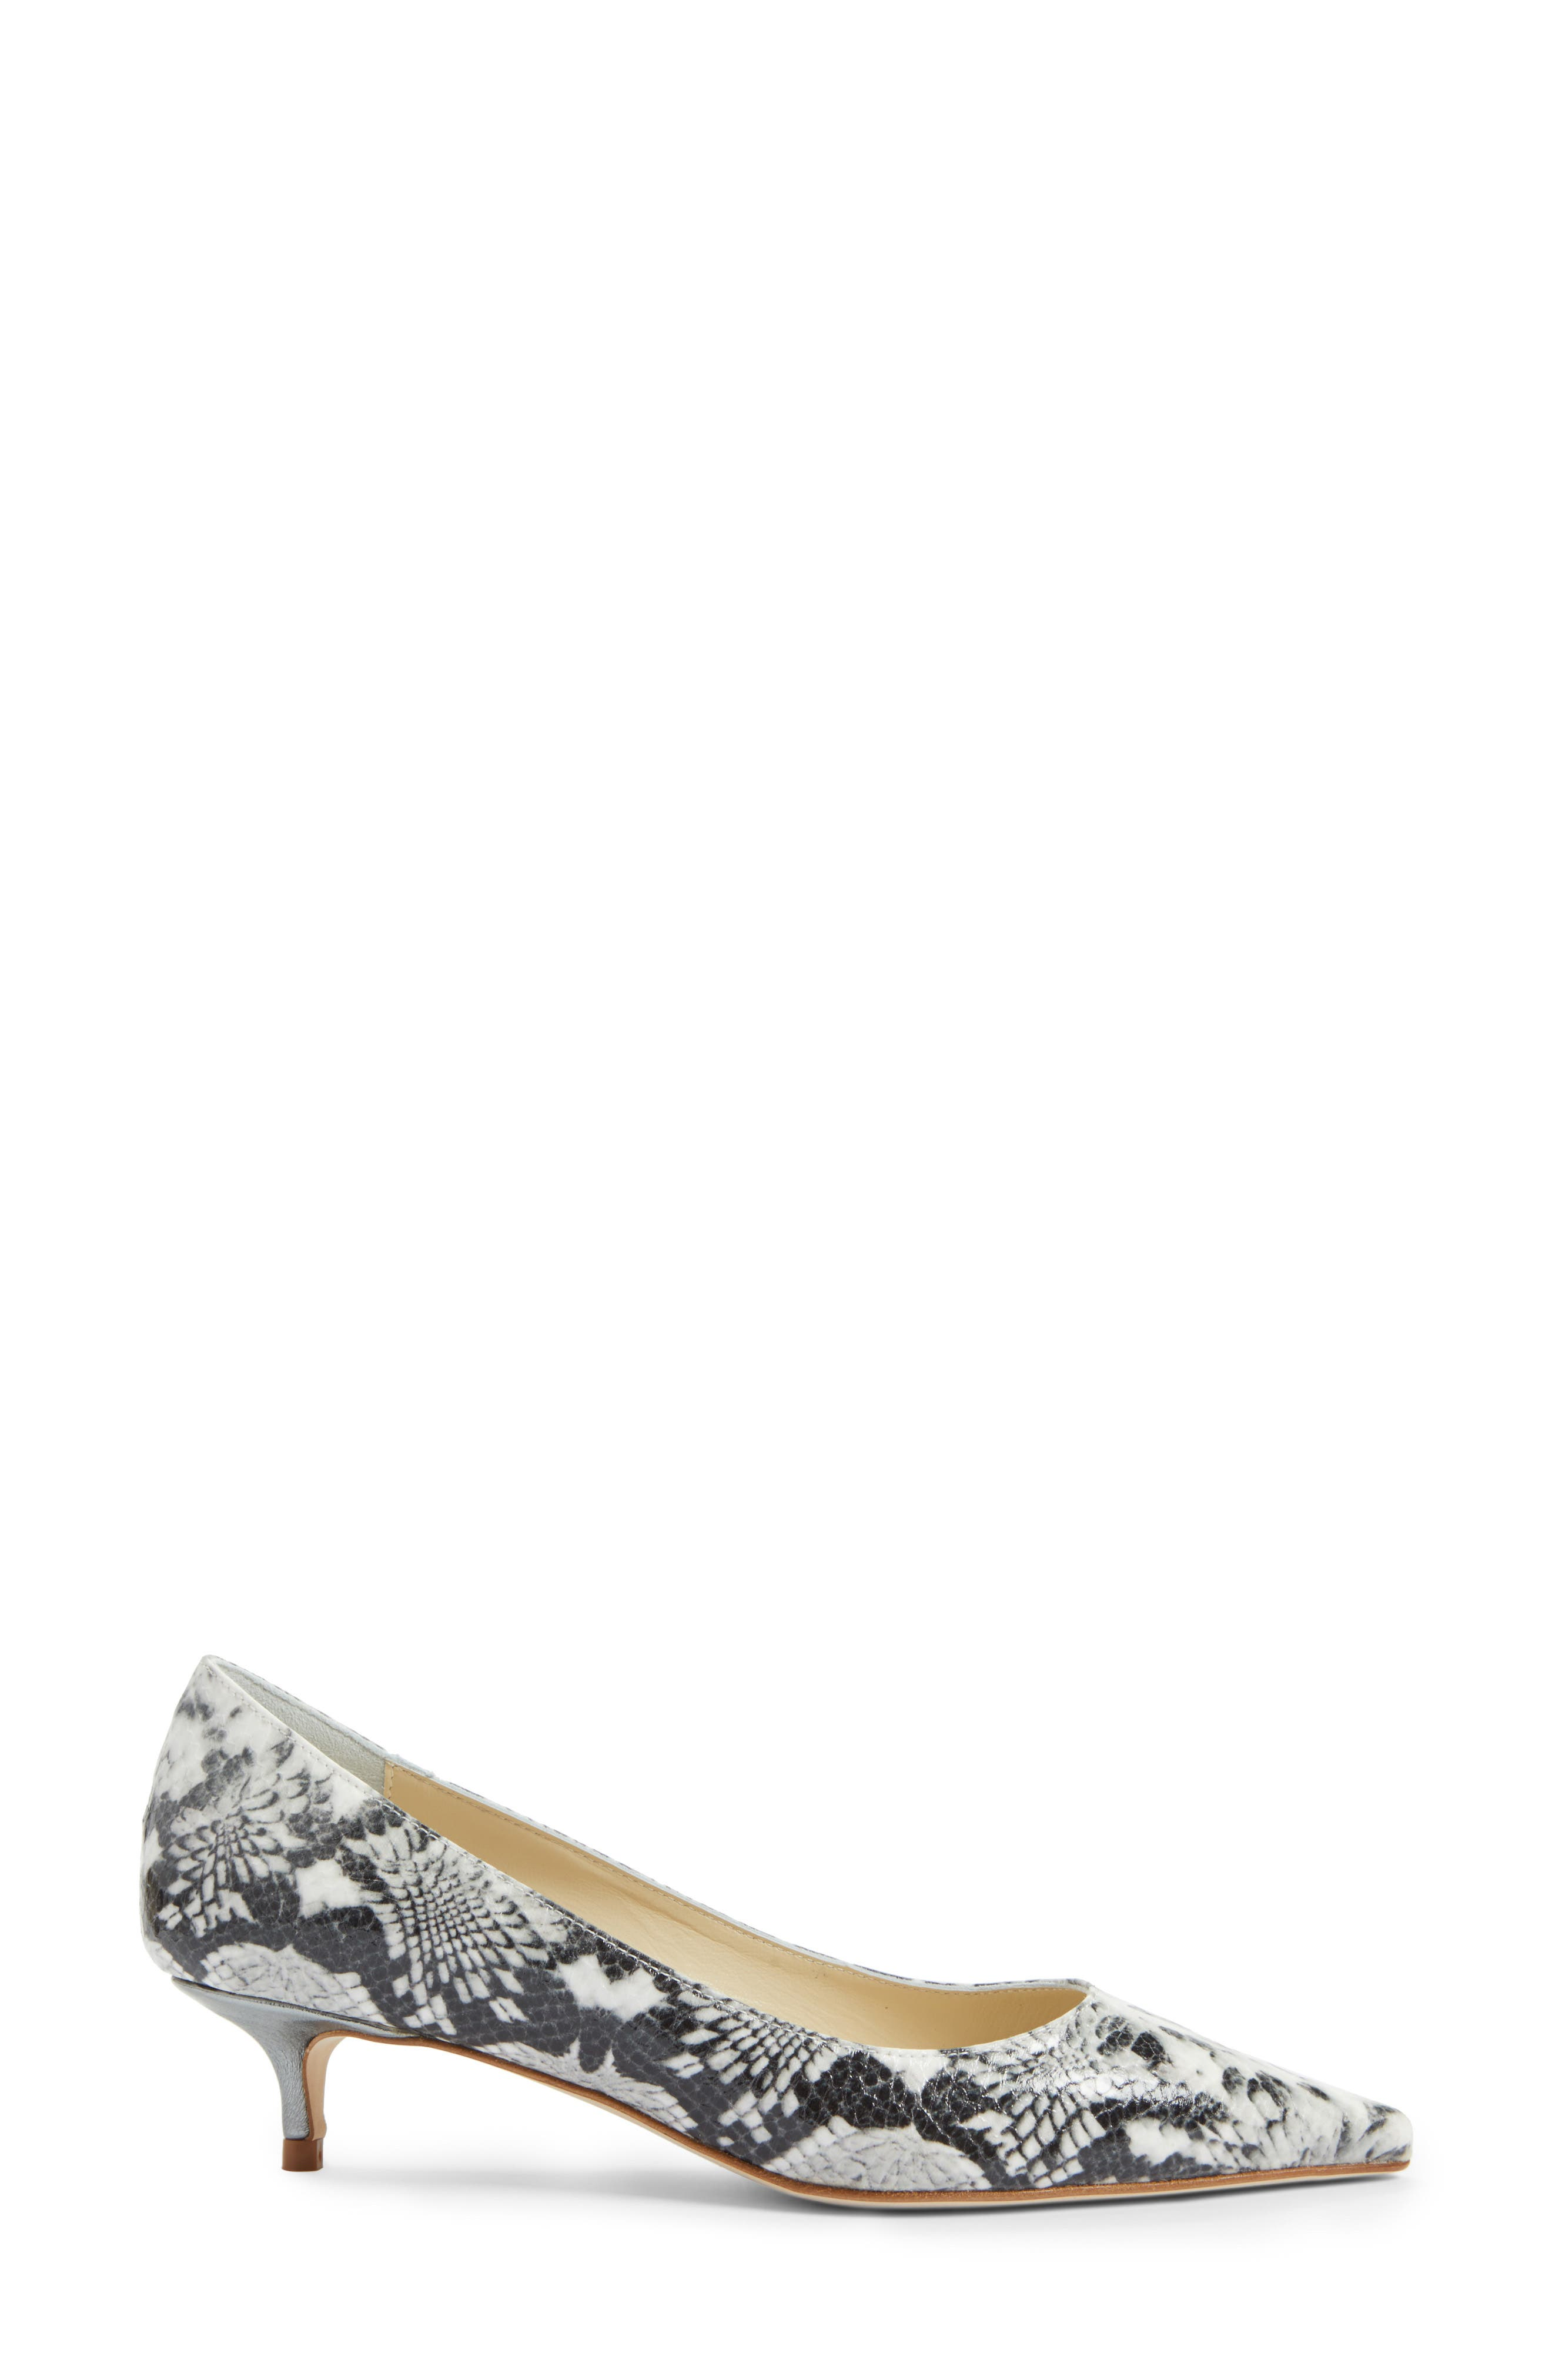 Butter Born Pointy Toe Pump,                             Alternate thumbnail 16, color,